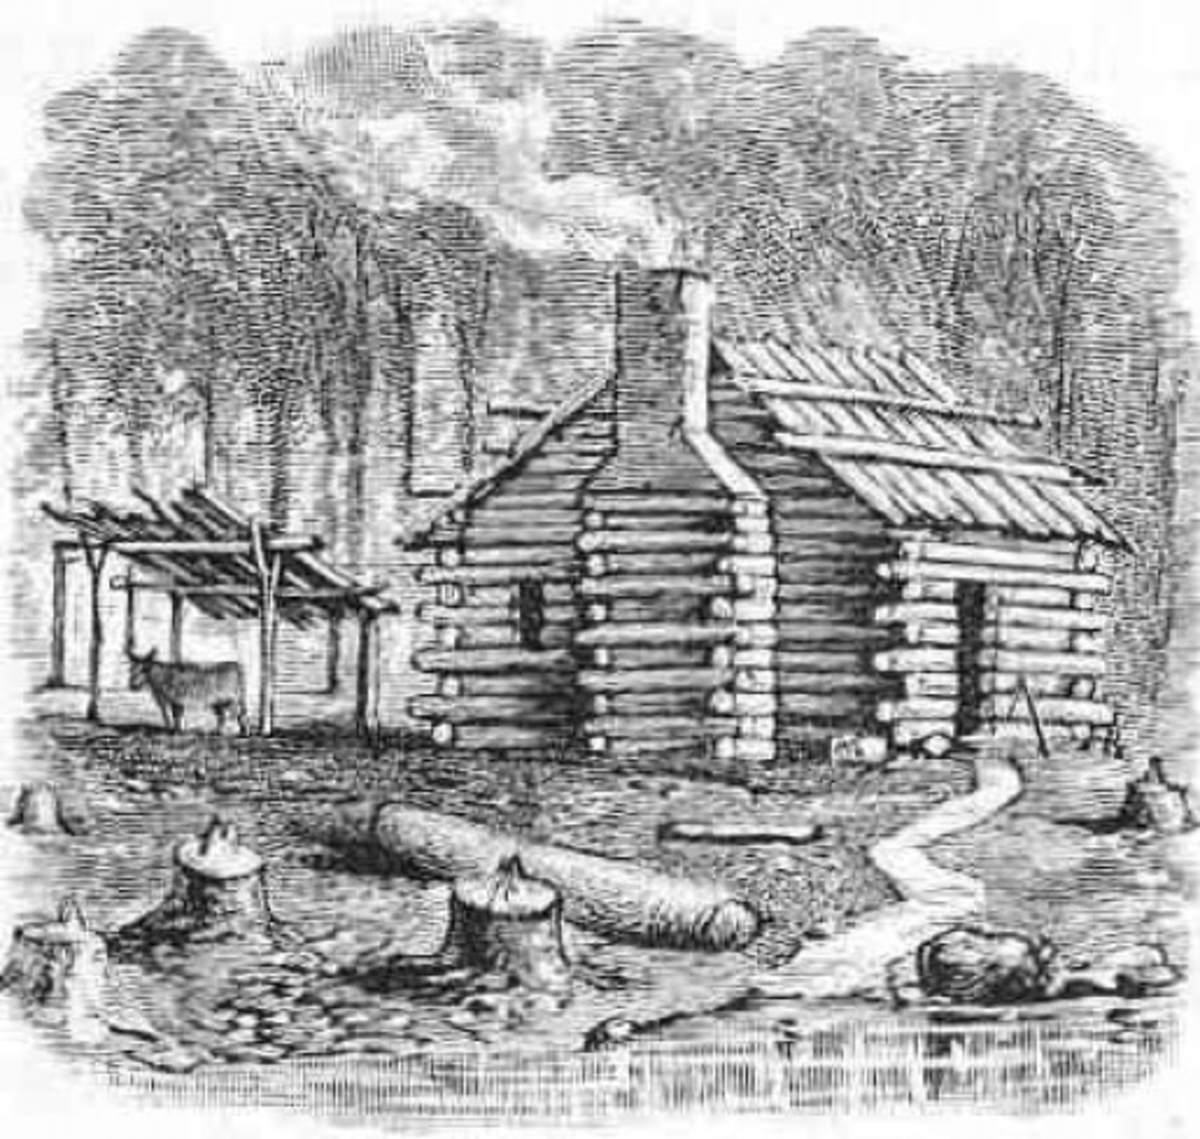 What the home of the first settlers in America looked like.